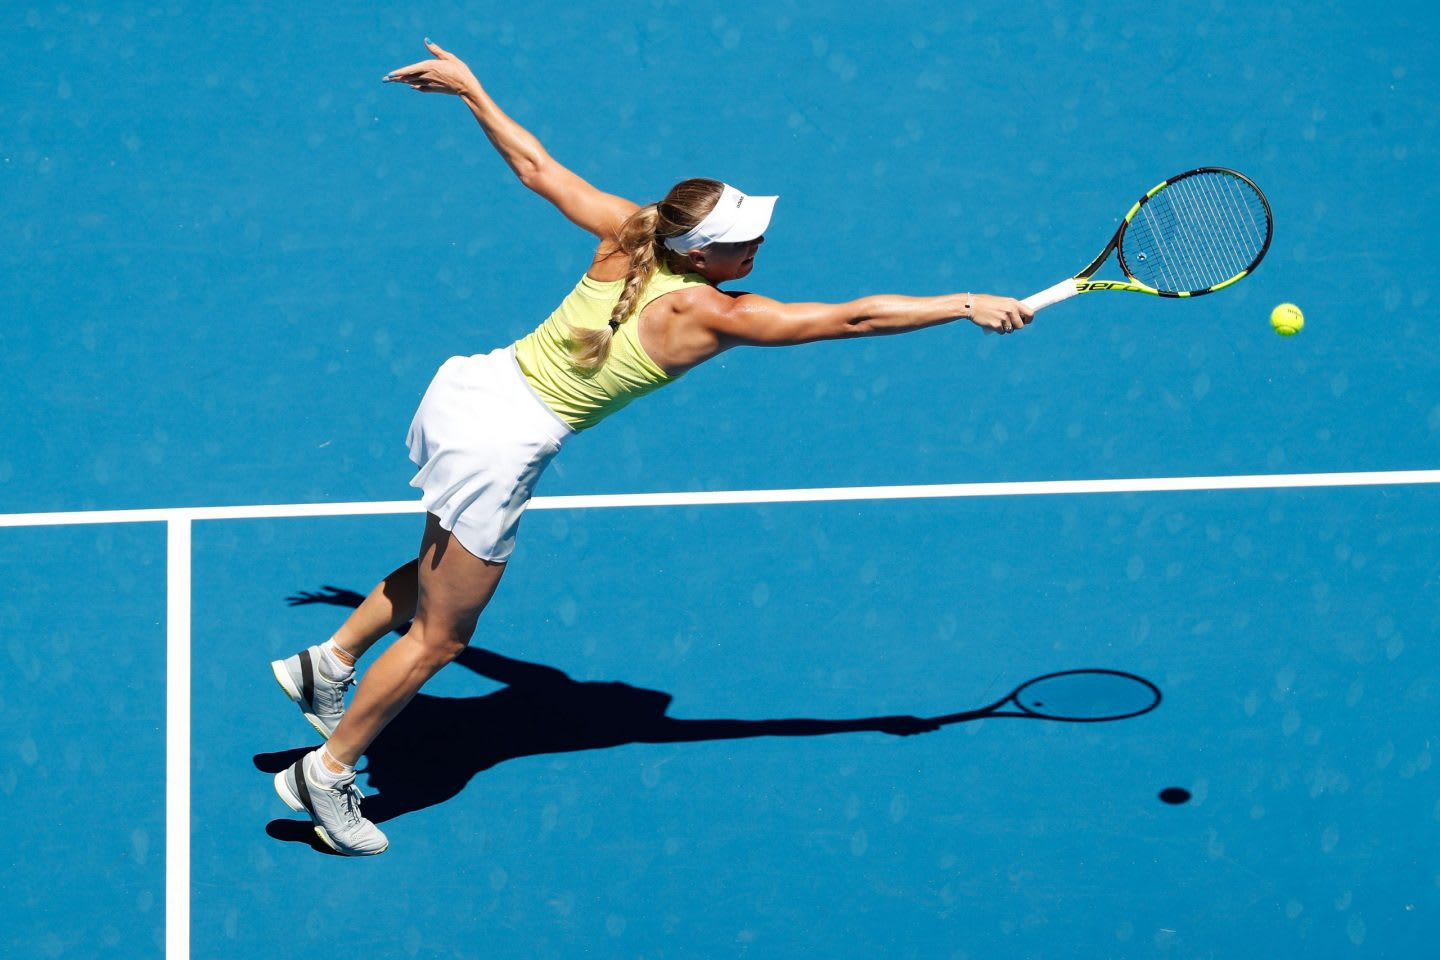 Woman wearing a yellow and white tennis outfit hitting a tennis ball with a racket on a blue court, Caroline Wozniacki, tennis, player, Danish, athlete, adidas, Australia, Melbourne